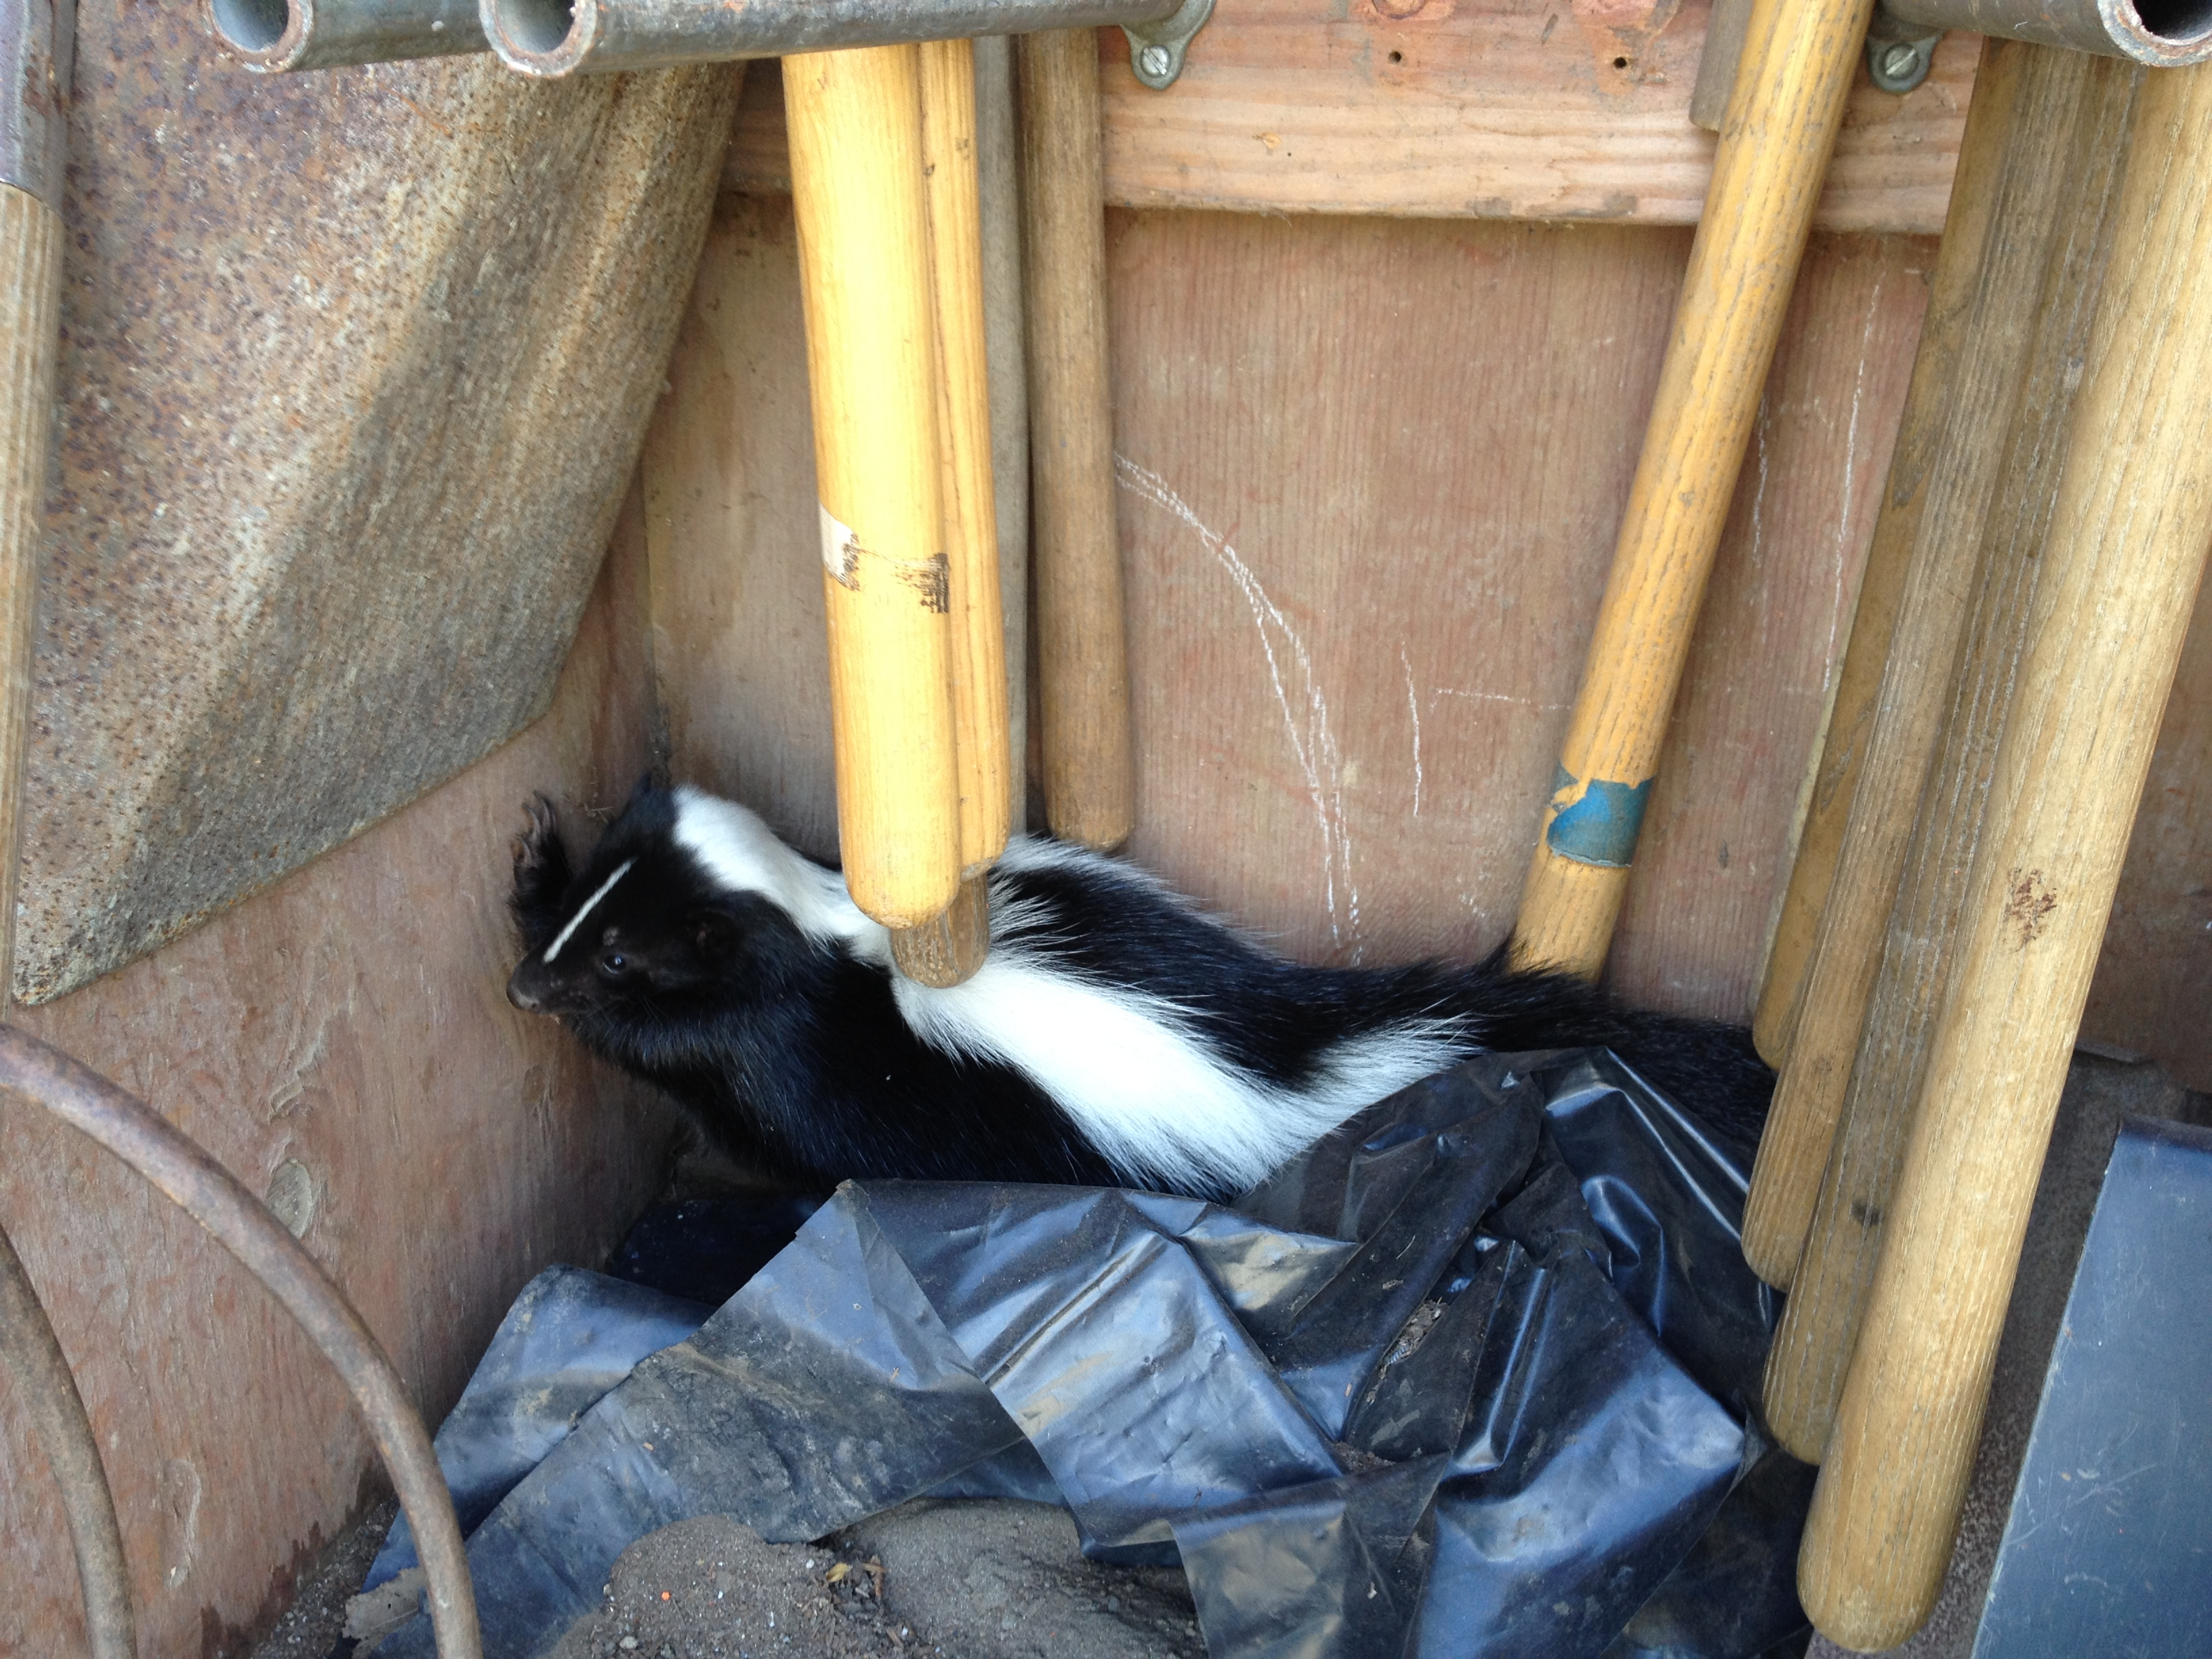 A skunk found at the Horticulture Department area at City College of San Francisco, Ocean Campus. Often hiding during bright daylight, they shoot a sulfur smell spray as a self-defense. Skunks may carry rabies and only spray each other during mating season.   Courtesy: Environmental & Horticulture/Floristry Department Instructor Thomas Wang